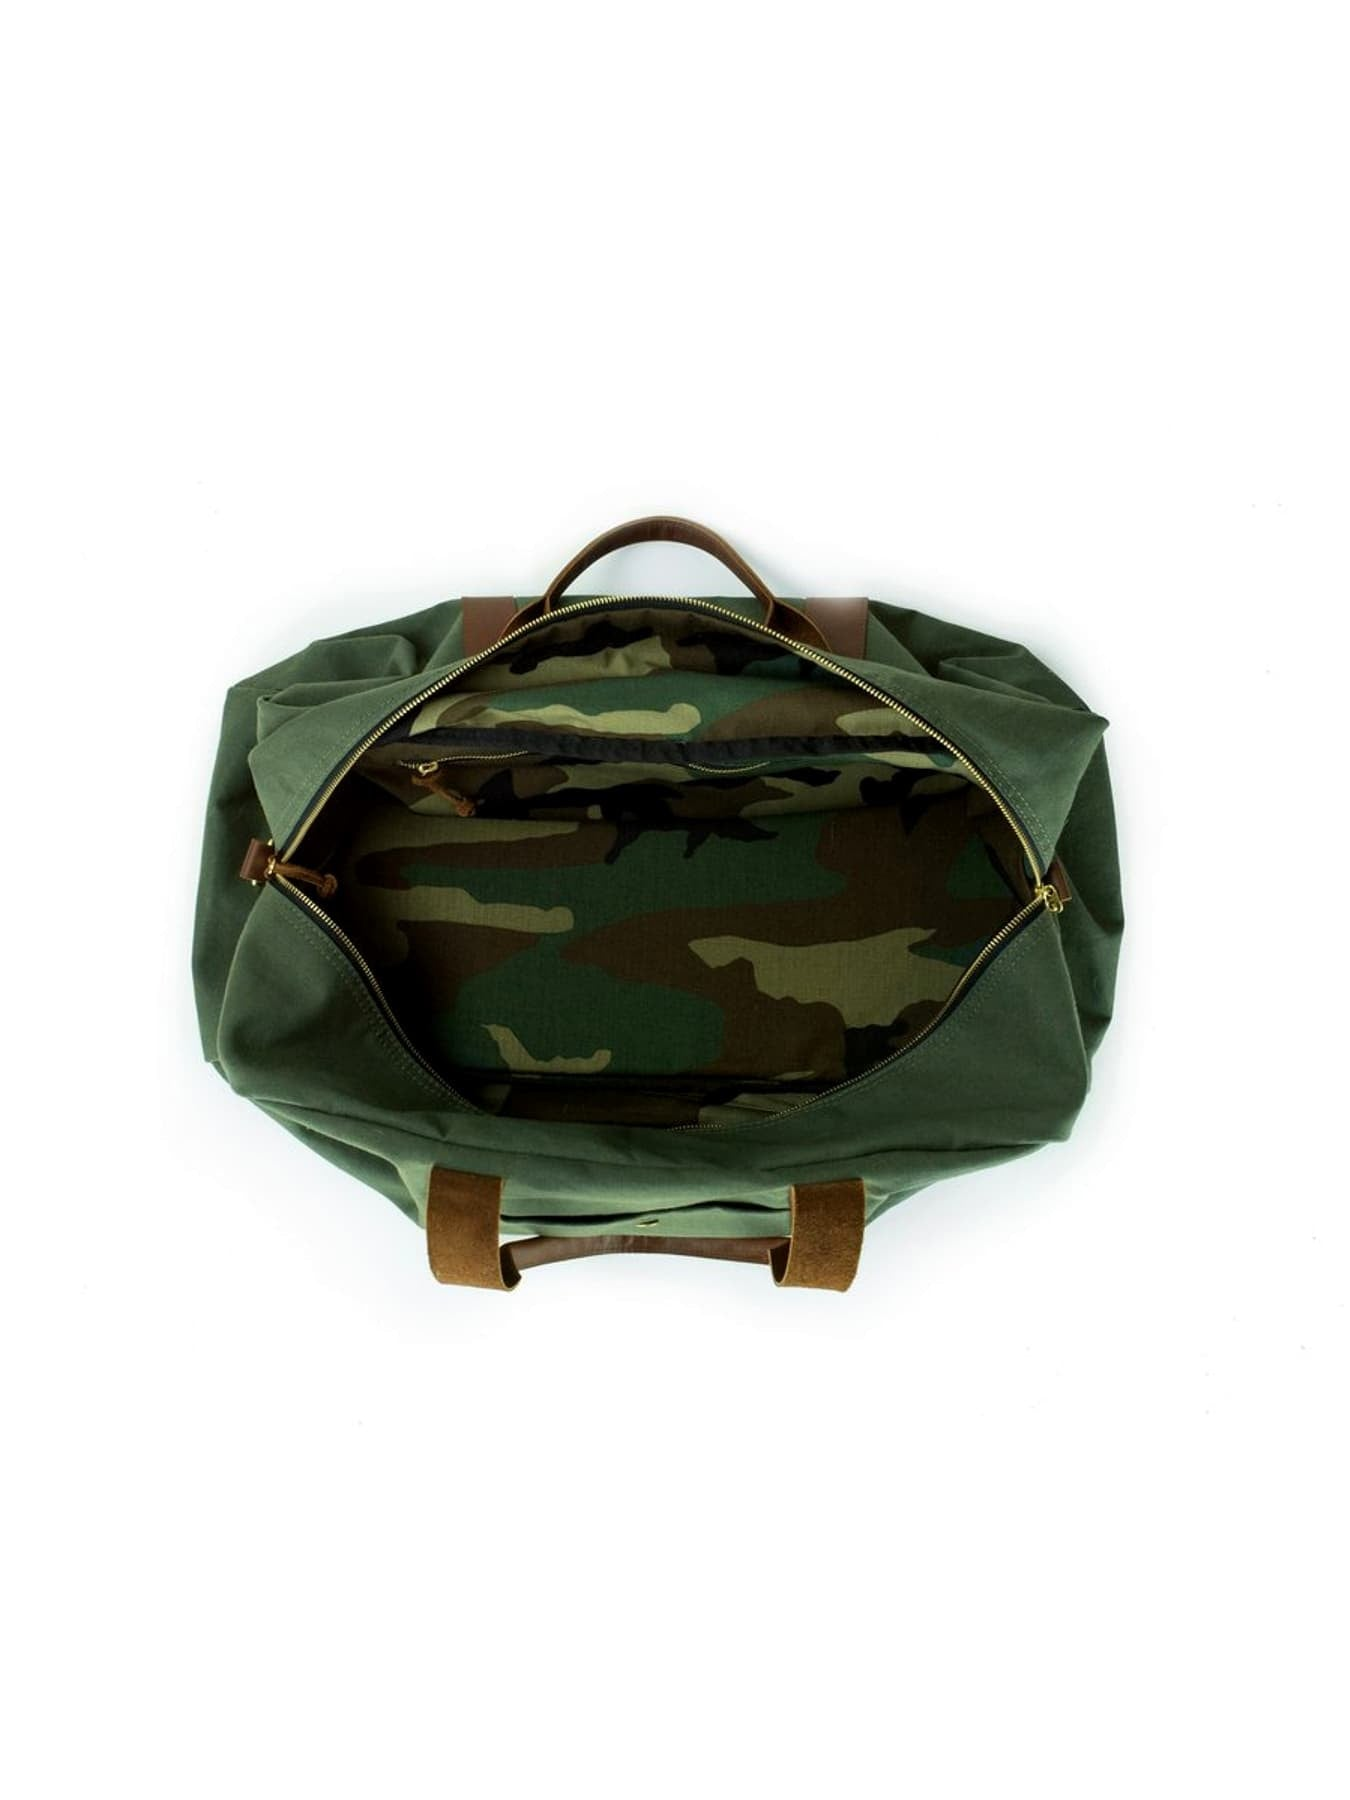 411571b0a22 Green Water Resistant Duffle Bag   Fair Trade   Shopping for a Change